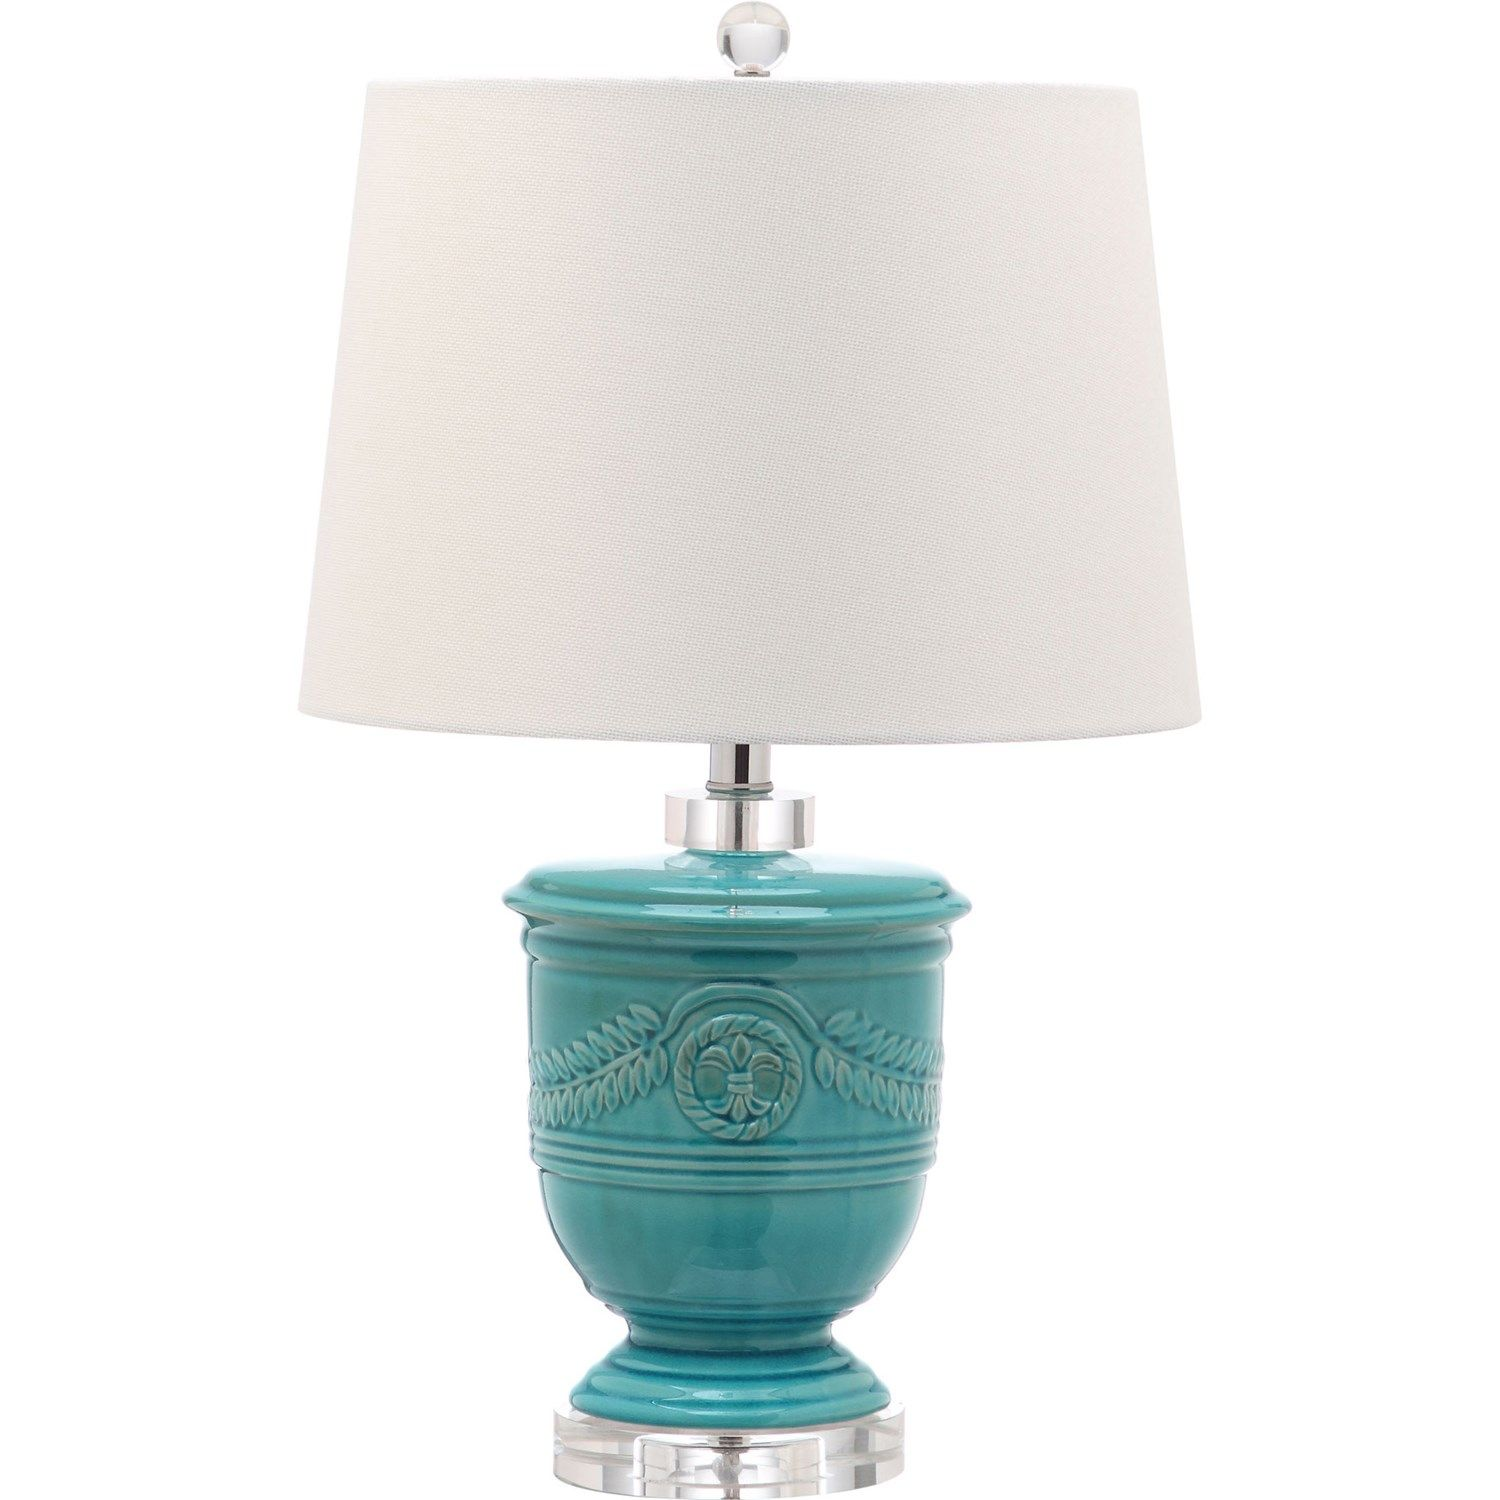 Safavieh LIT4252 | Table lamp sets, Table lamp, Turquoise